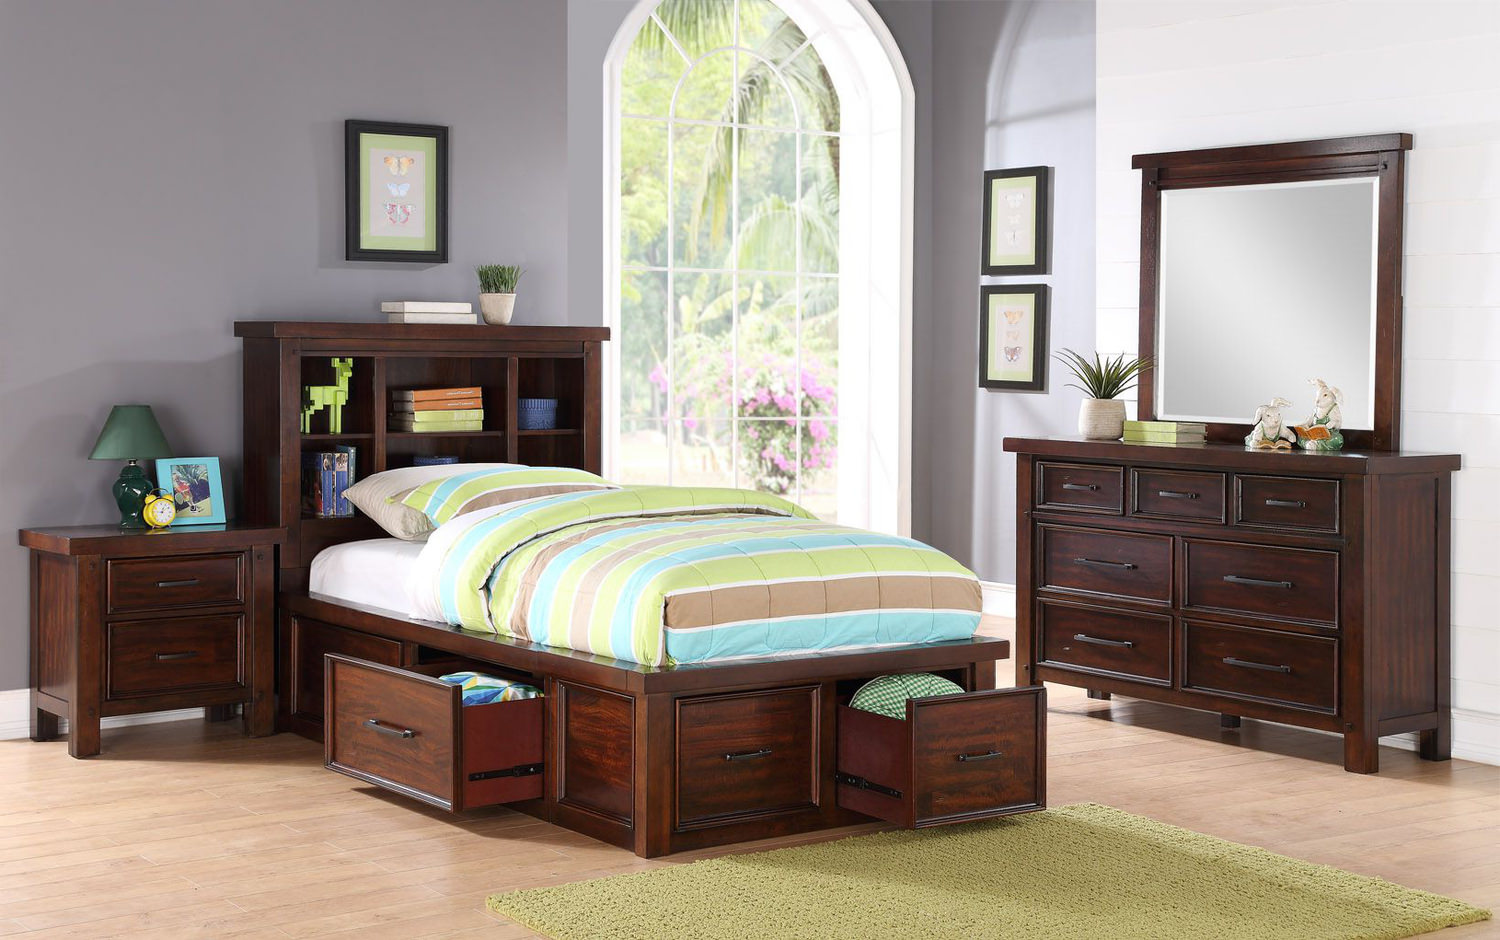 Delray Bookcase Storage Bedroom Suite By Hom Furniture